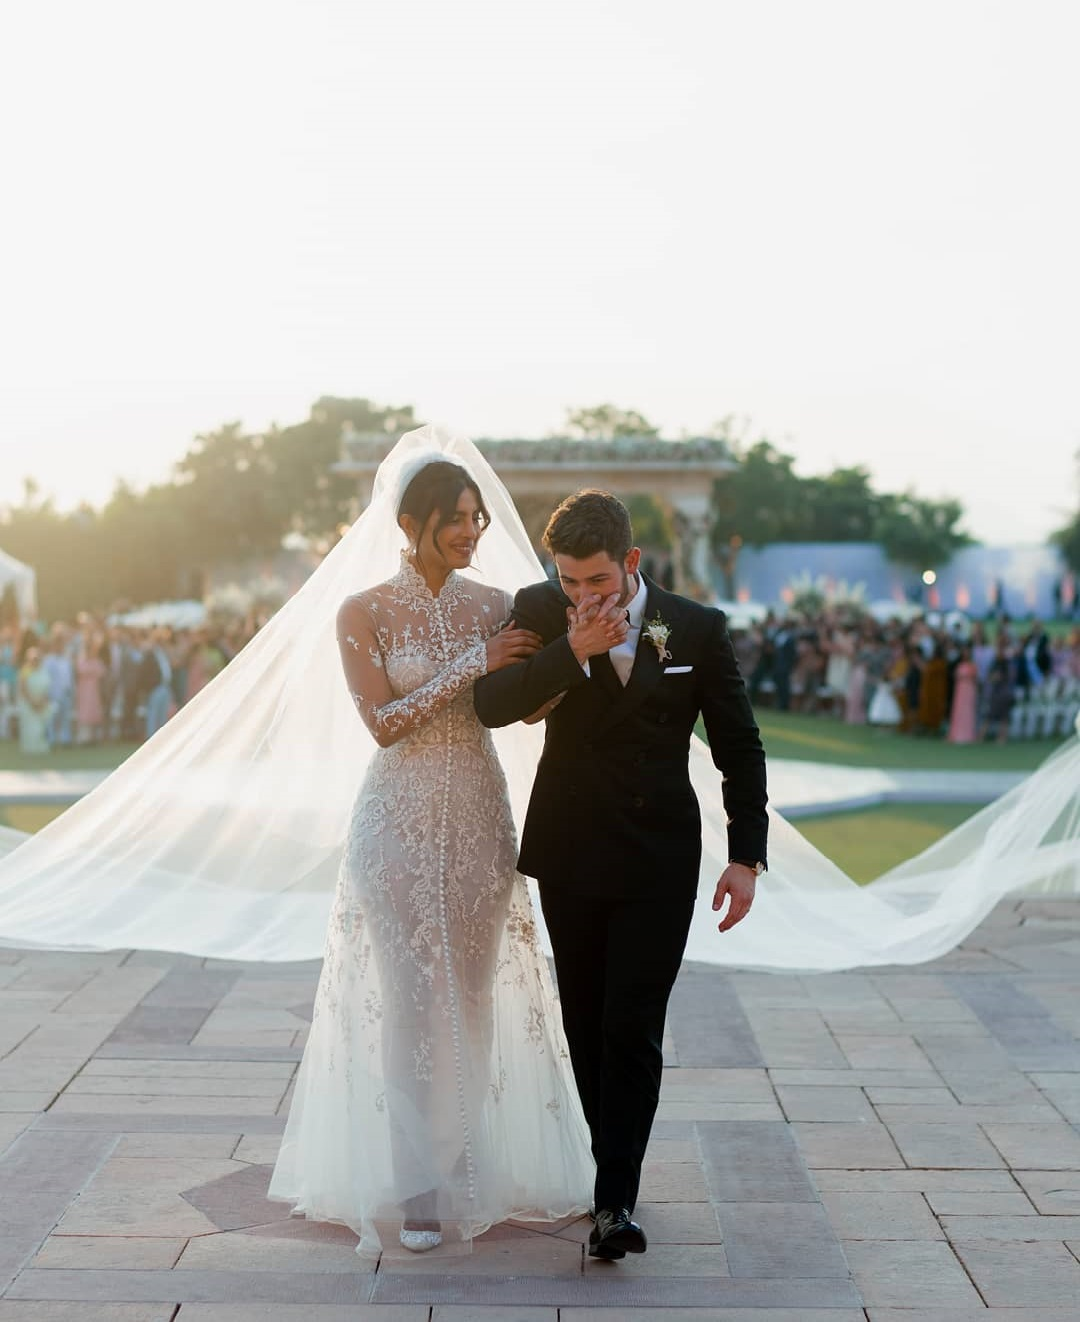 Ralph Lauren Designs The Wedding Dress For The First Time For A